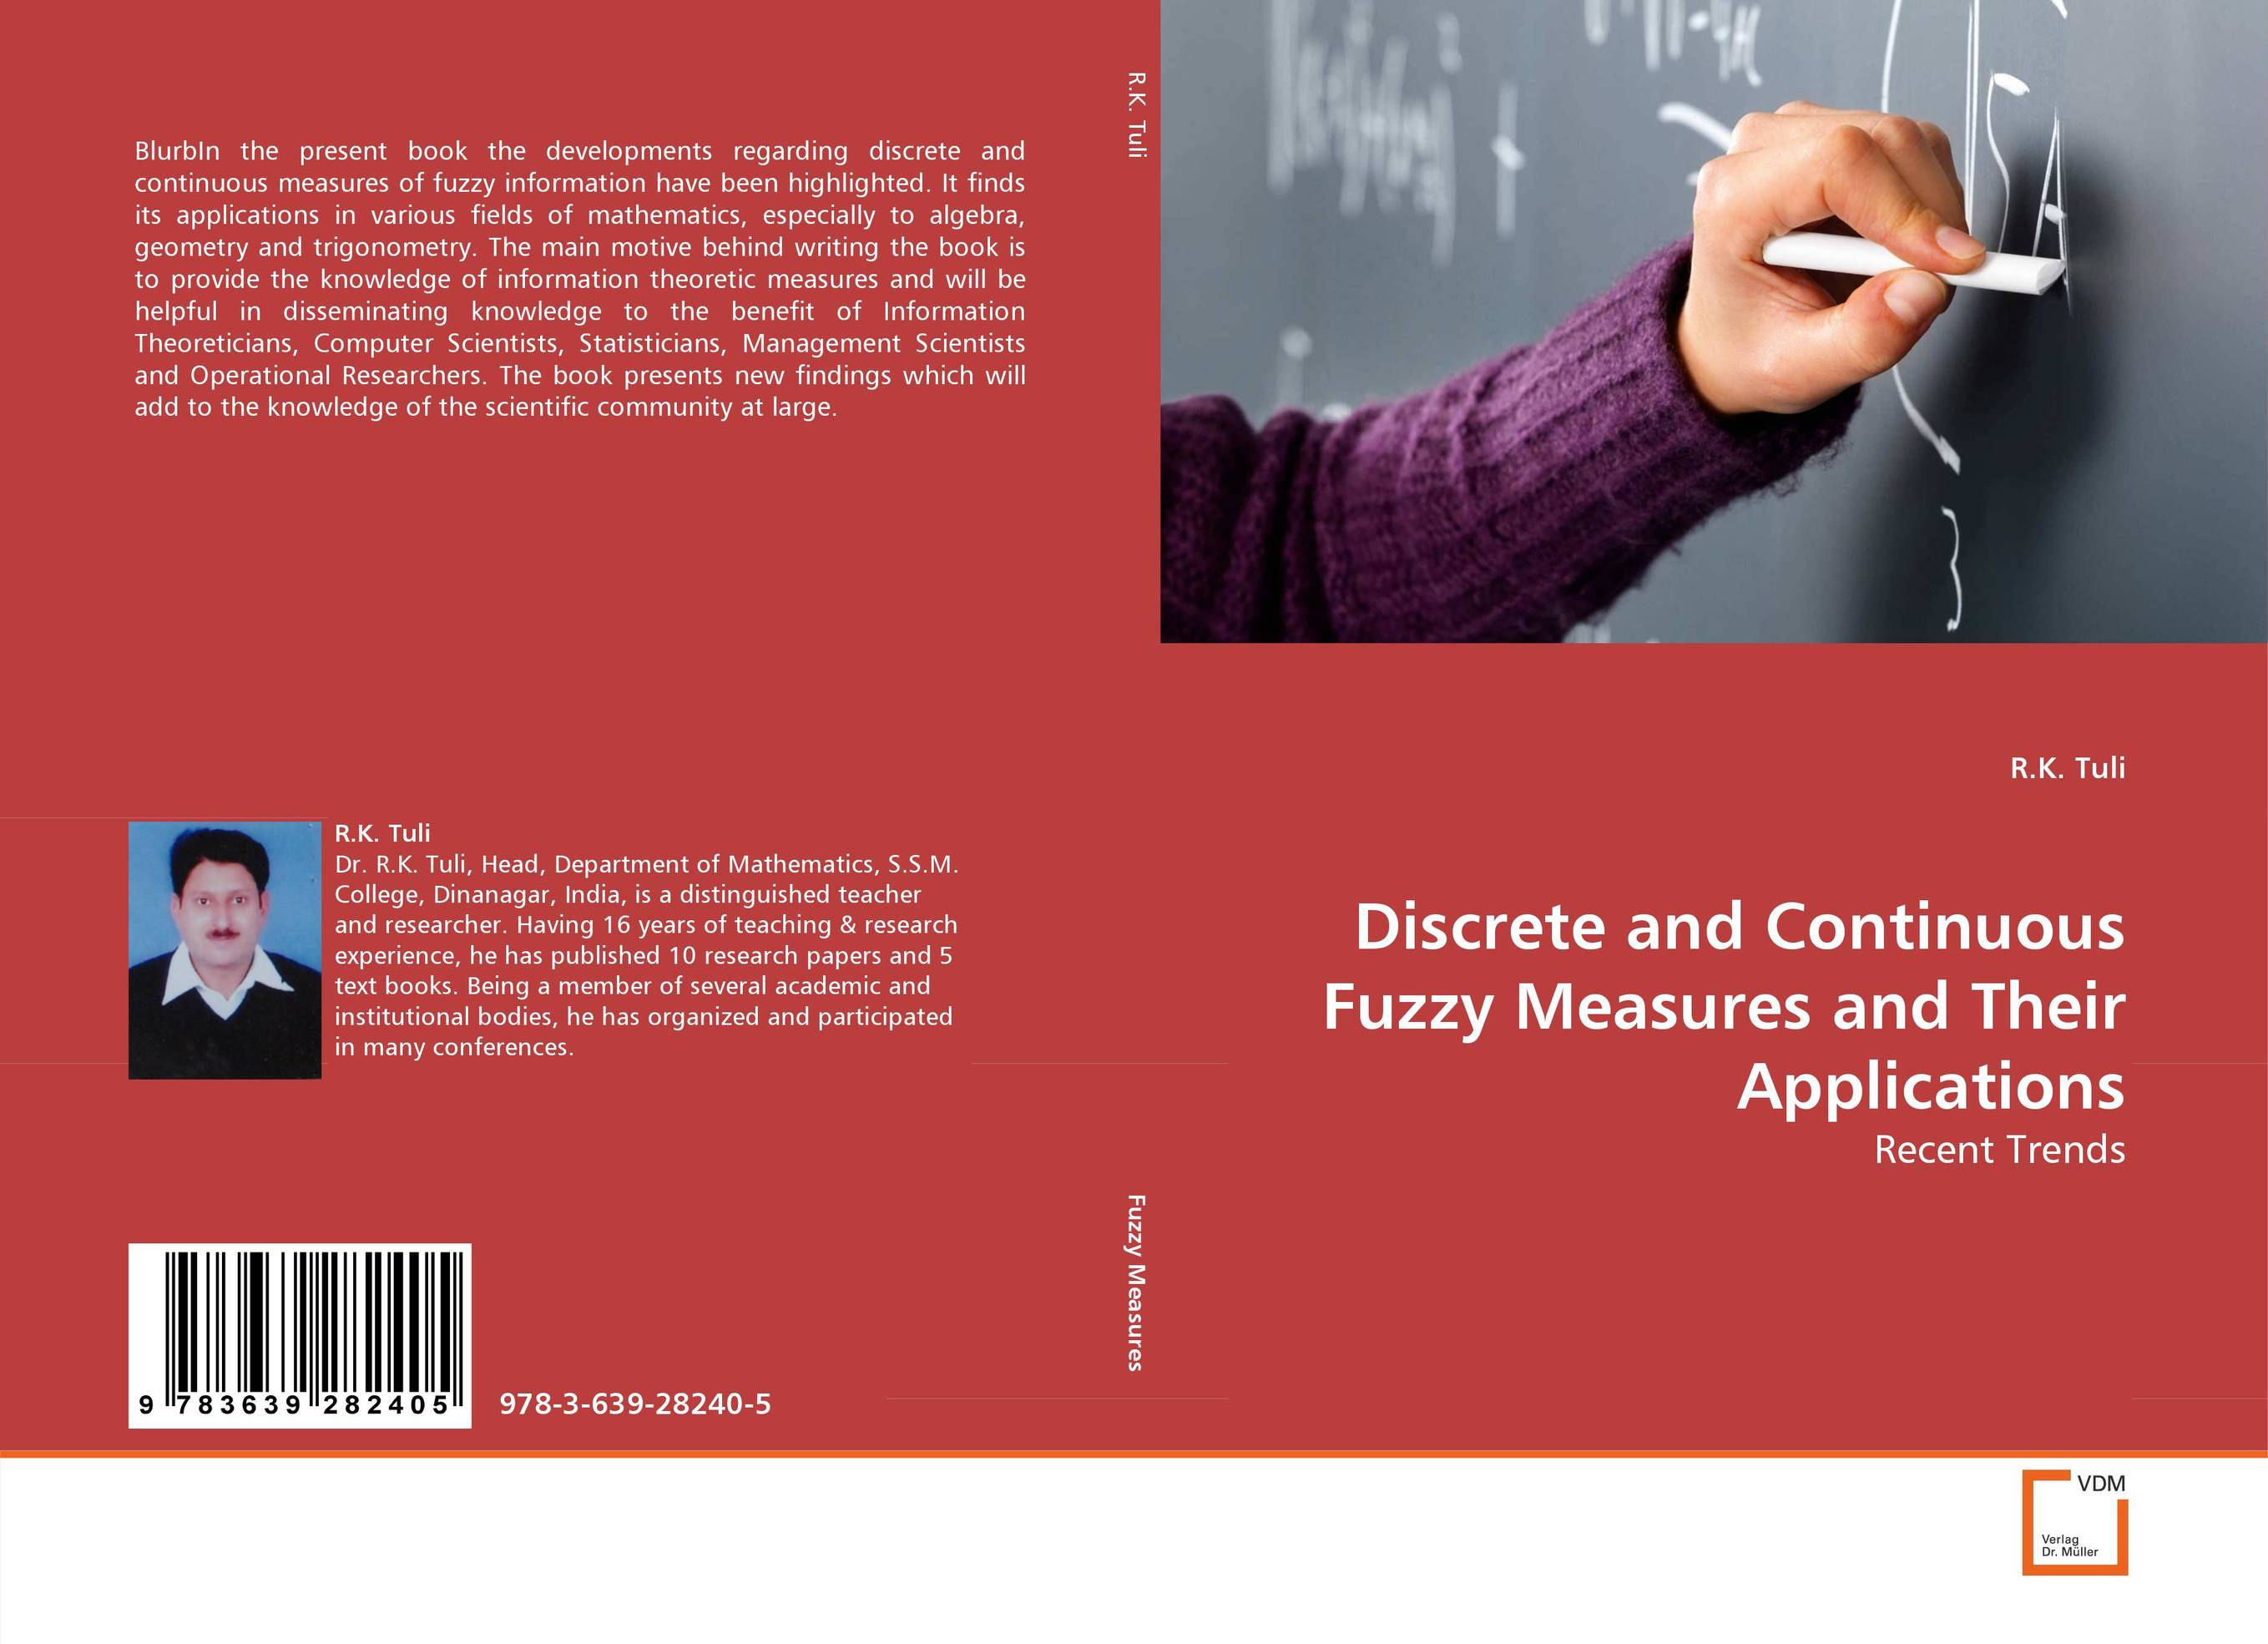 Discrete and Continuous Fuzzy Measures and Their Applications lisa disselkamp workforce asset management book of knowledge